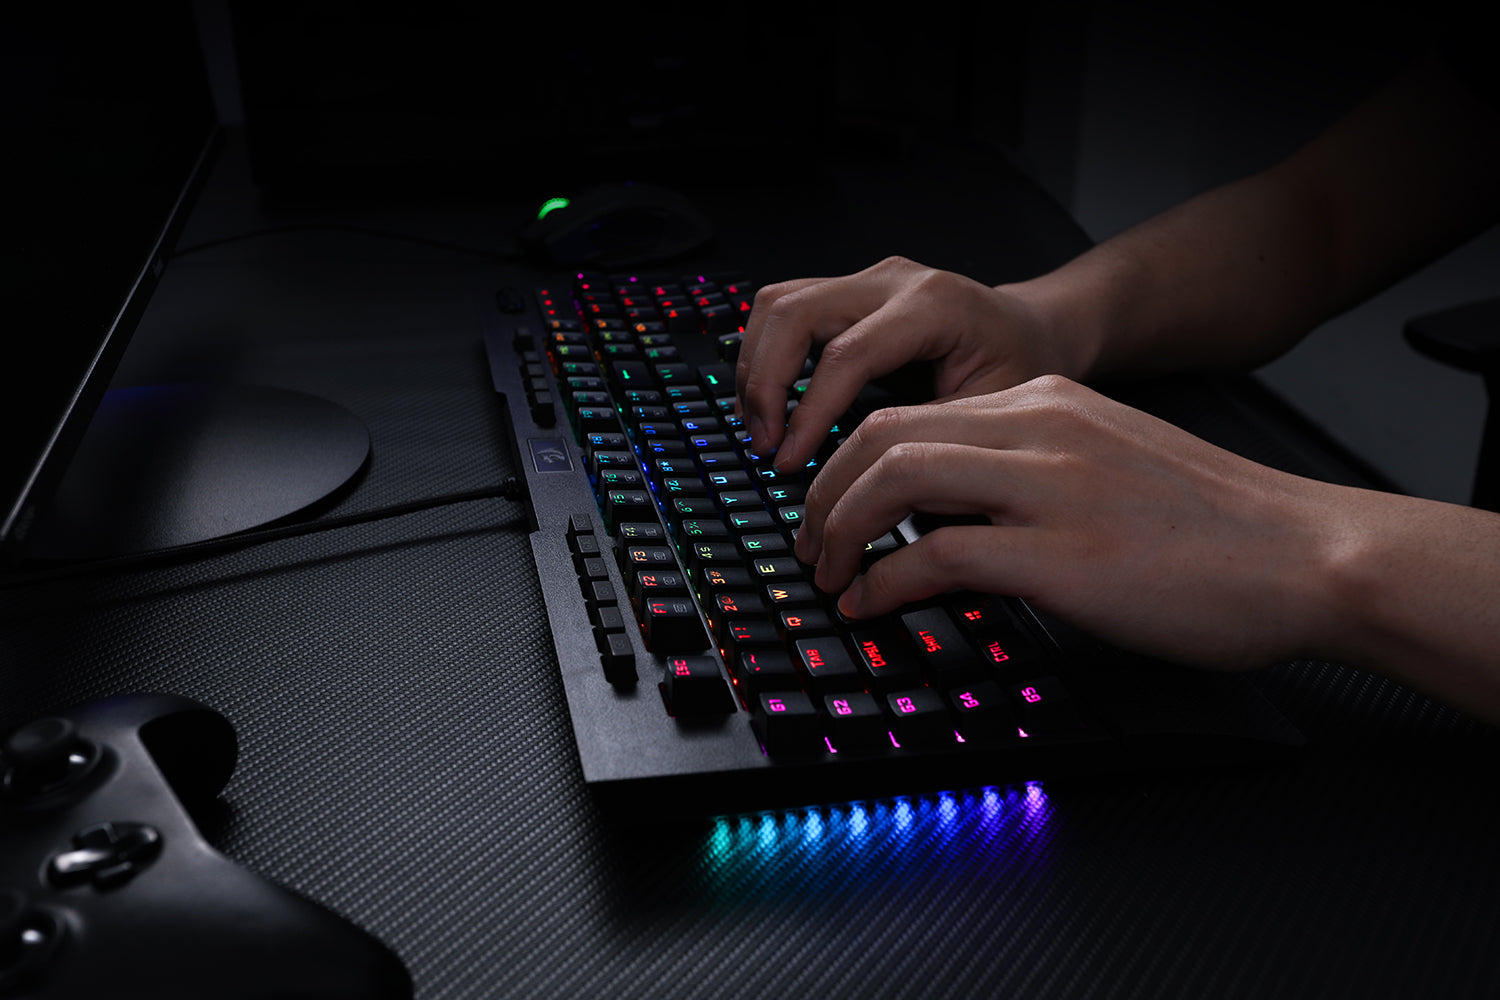 Redragon K586-pro Brahma RGB Mechanical Gaming Keyboard